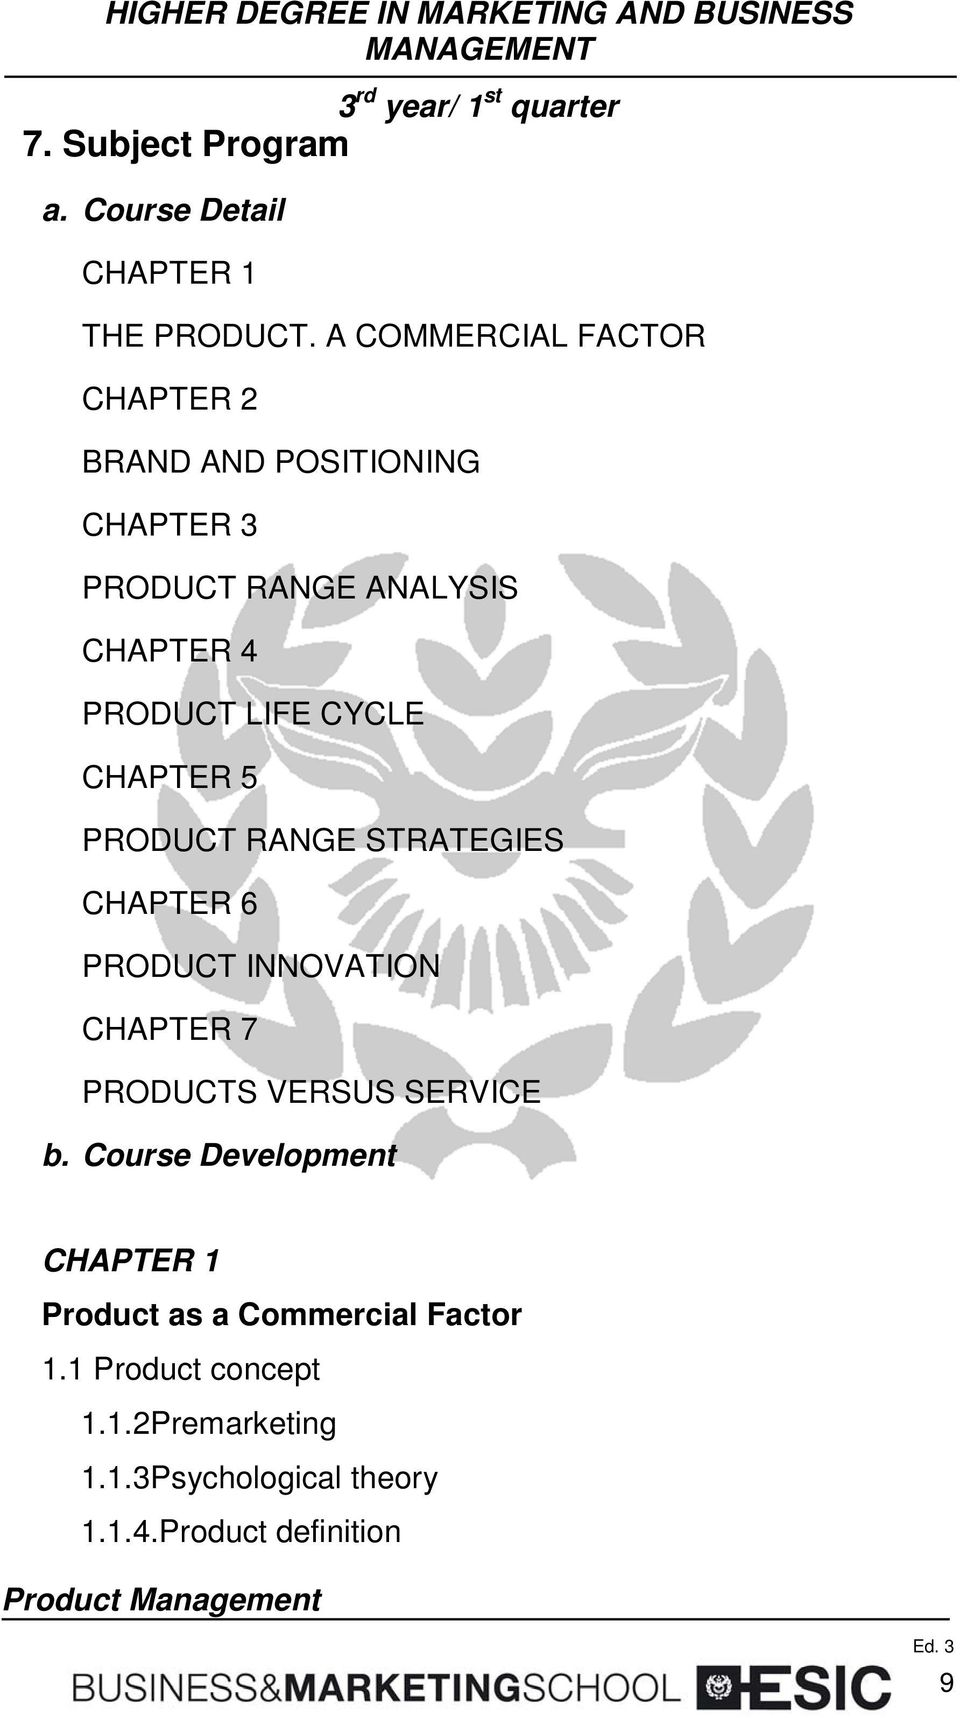 LIFE CYCLE CHAPTER 5 PRODUCT RANGE STRATEGIES CHAPTER 6 PRODUCT INNOVATION CHAPTER 7 PRODUCTS VERSUS